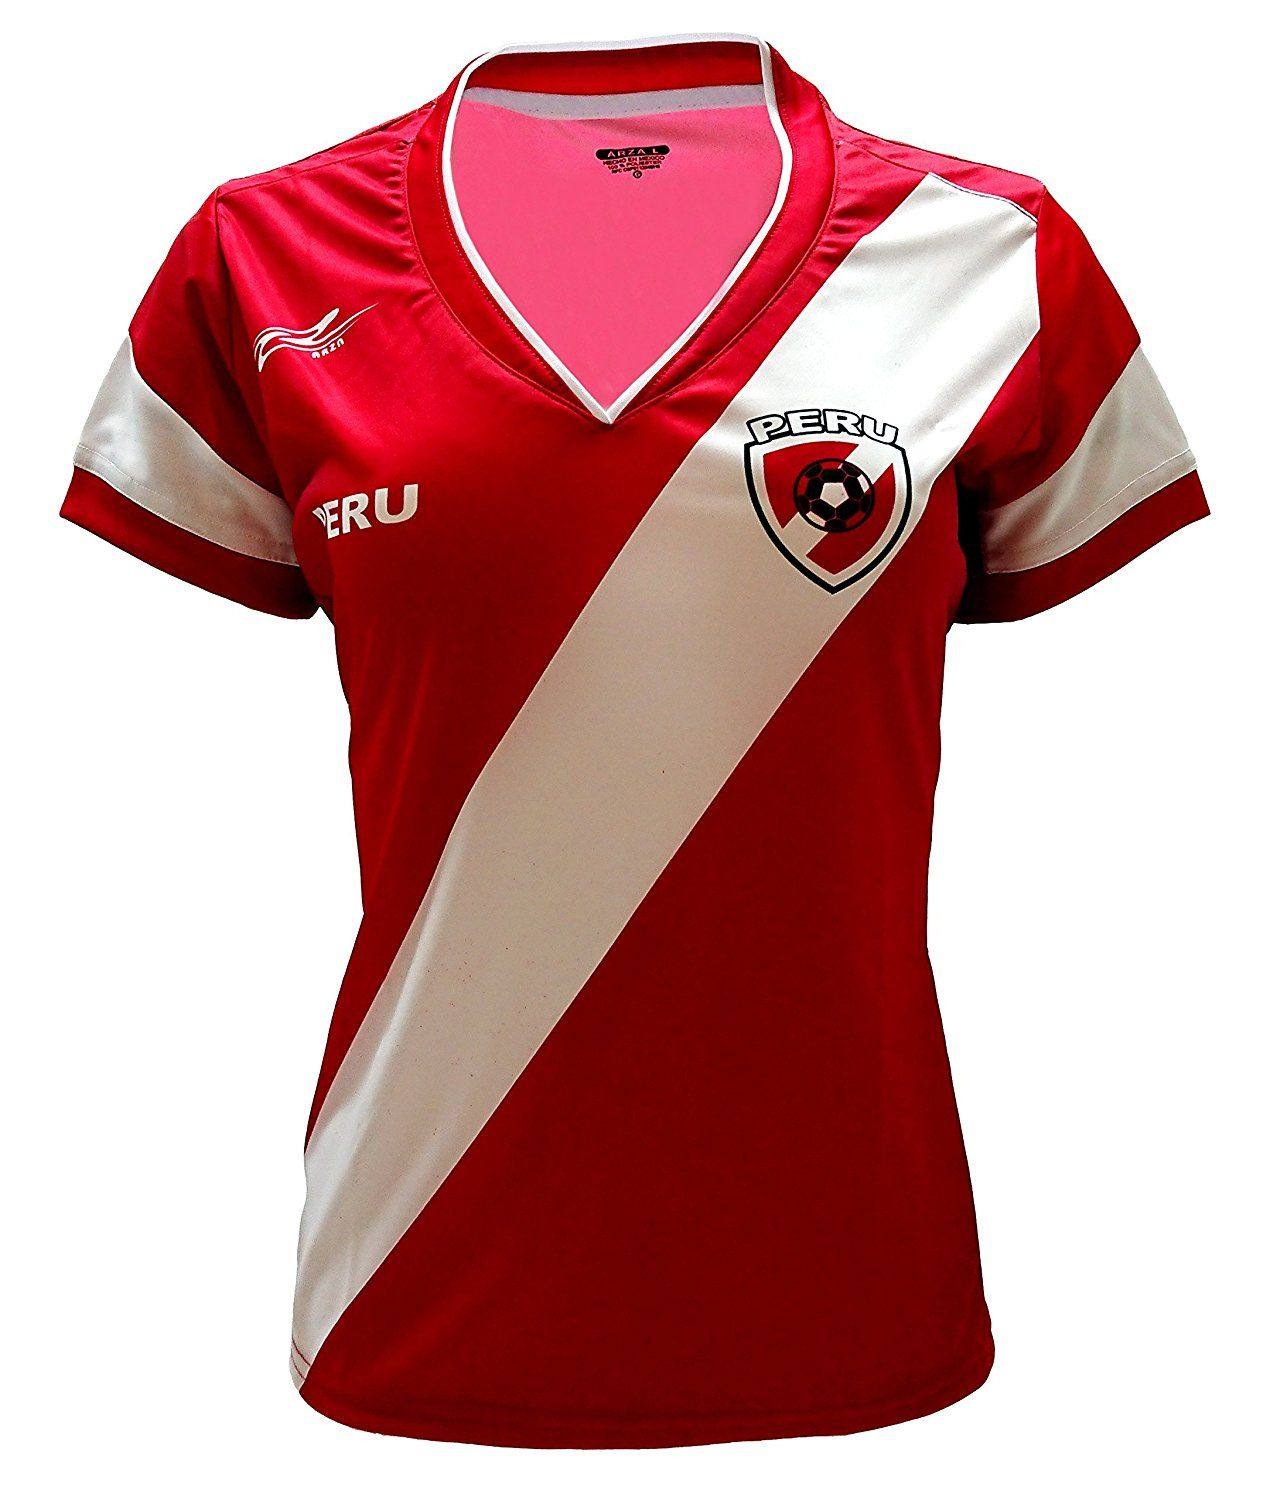 Peru Women Soccer Jersey Color Red 100% Polyester  Clothing World Cup 2018 78f0a04680